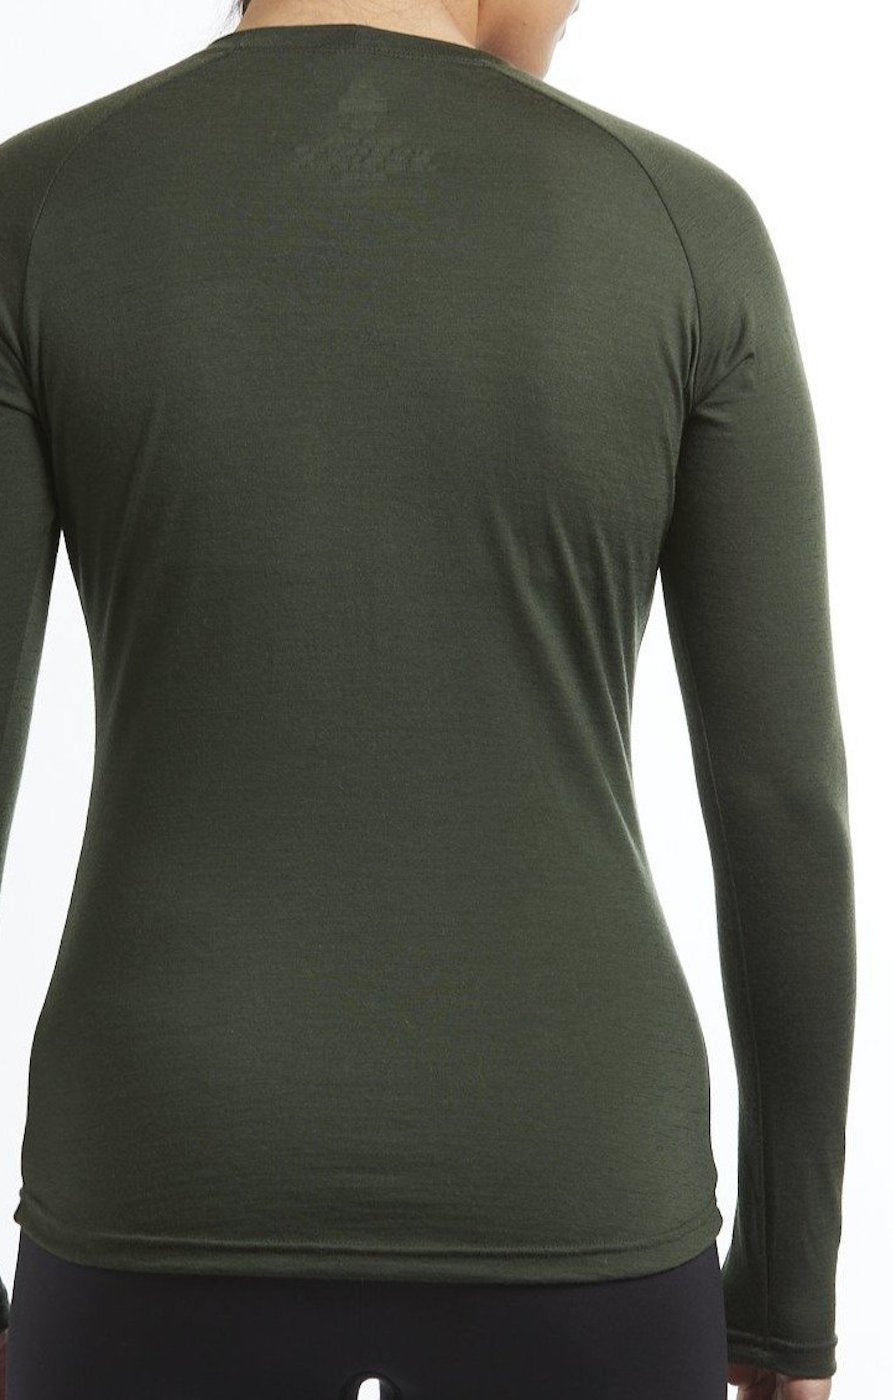 Womens merino wool thermal long sleeve base layer